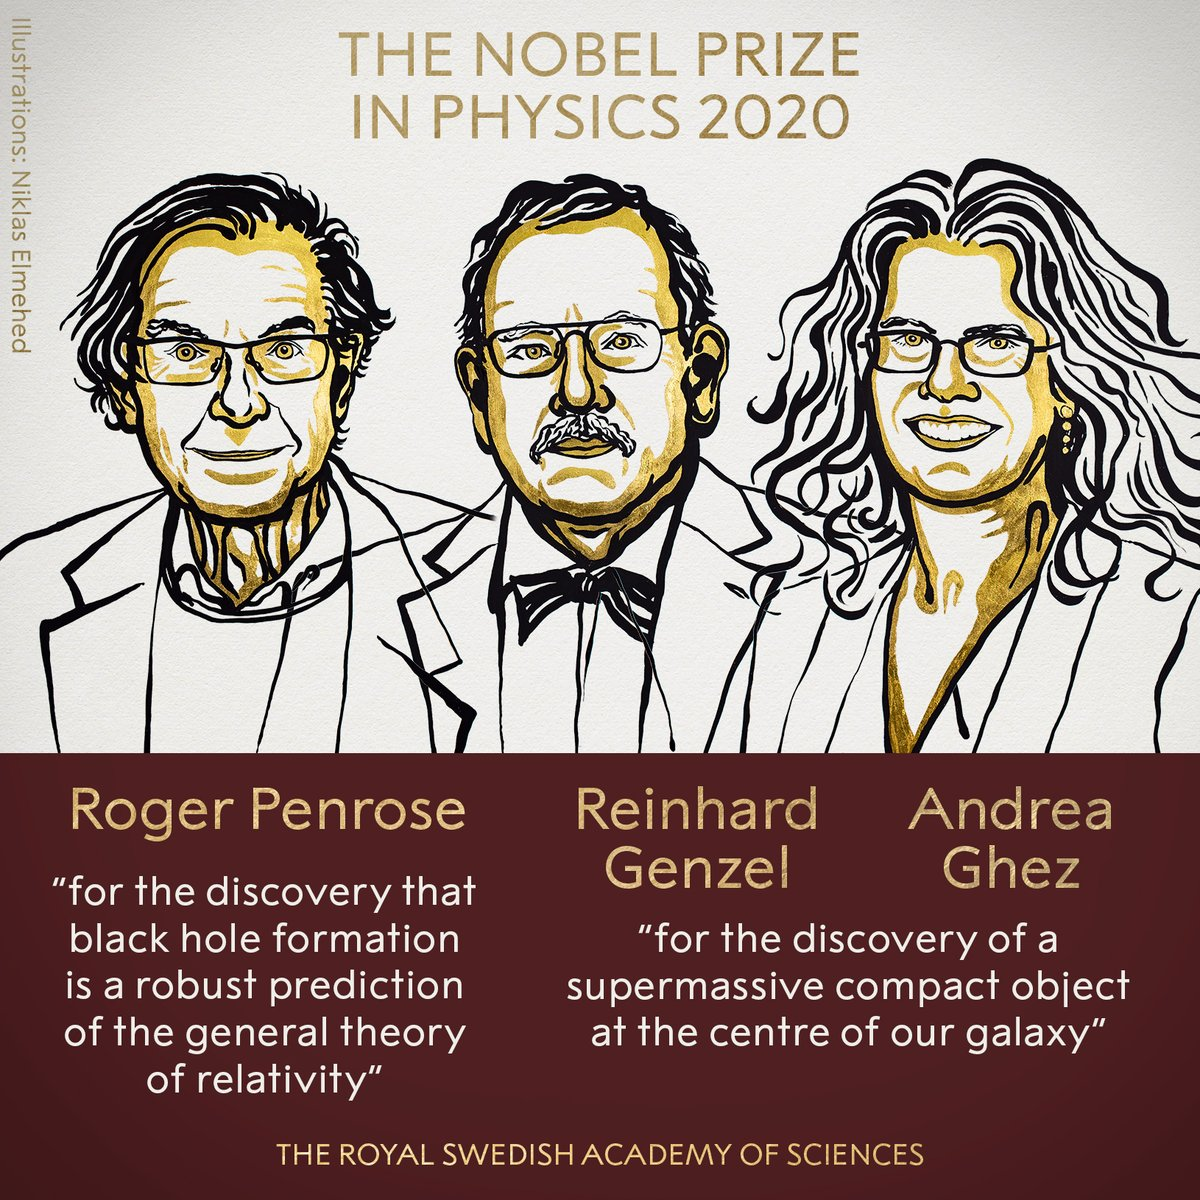 BREAKING NEWS:  The Royal Swedish Academy of Sciences has decided to award the 2020 #NobelPrize in Physics with one half to Roger Penrose and the other half jointly to Reinhard Genzel and Andrea Ghez. https://t.co/MipWwFtMjz